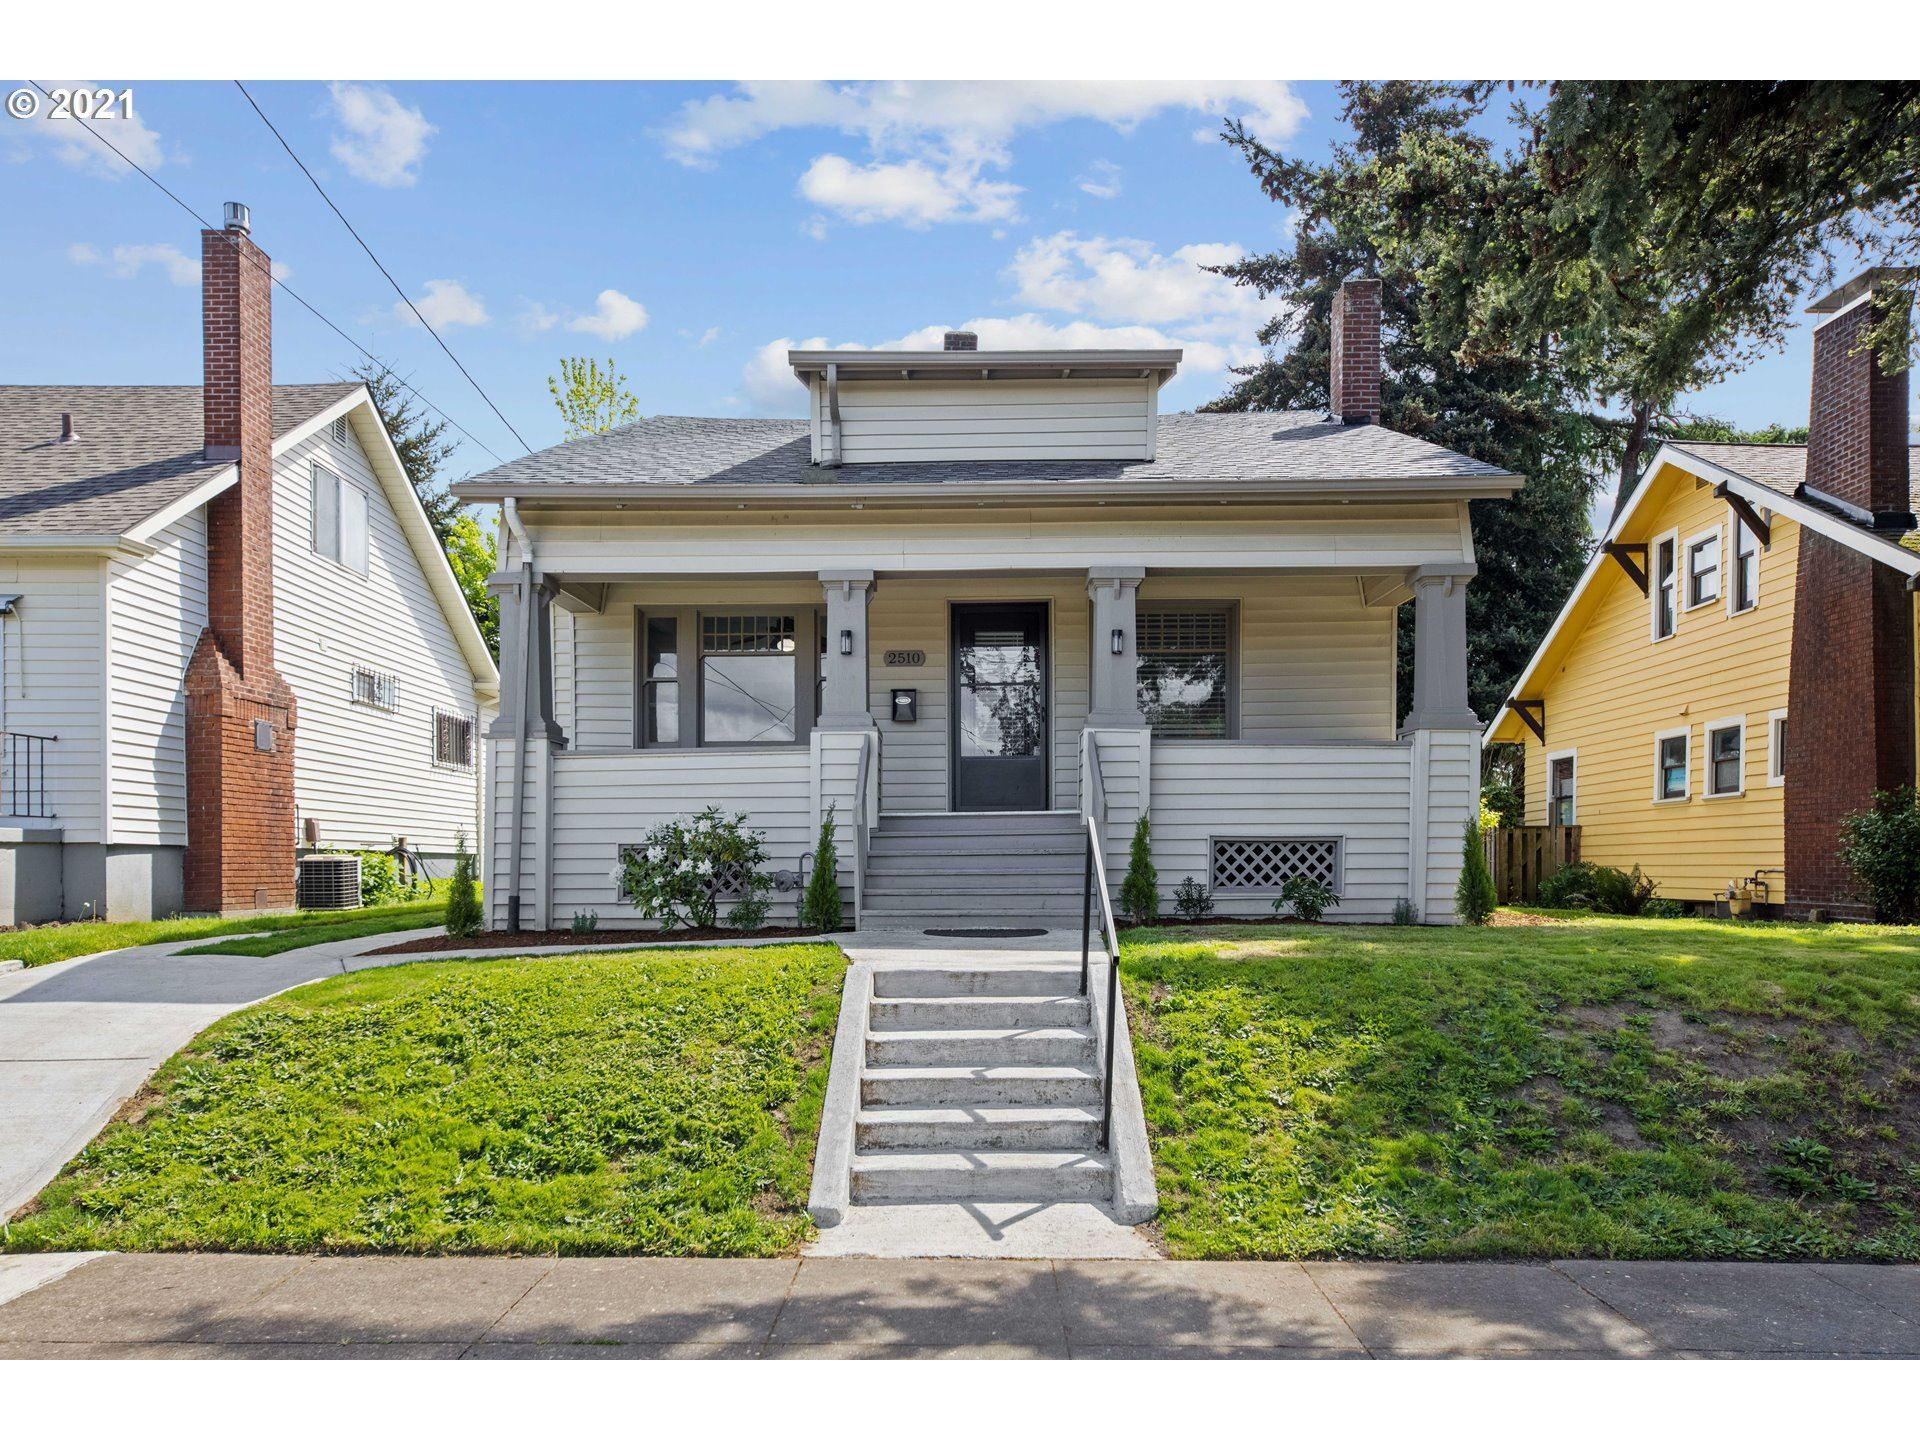 2510 SE 47TH AVE, Portland, OR 97206 - MLS#: 21251430